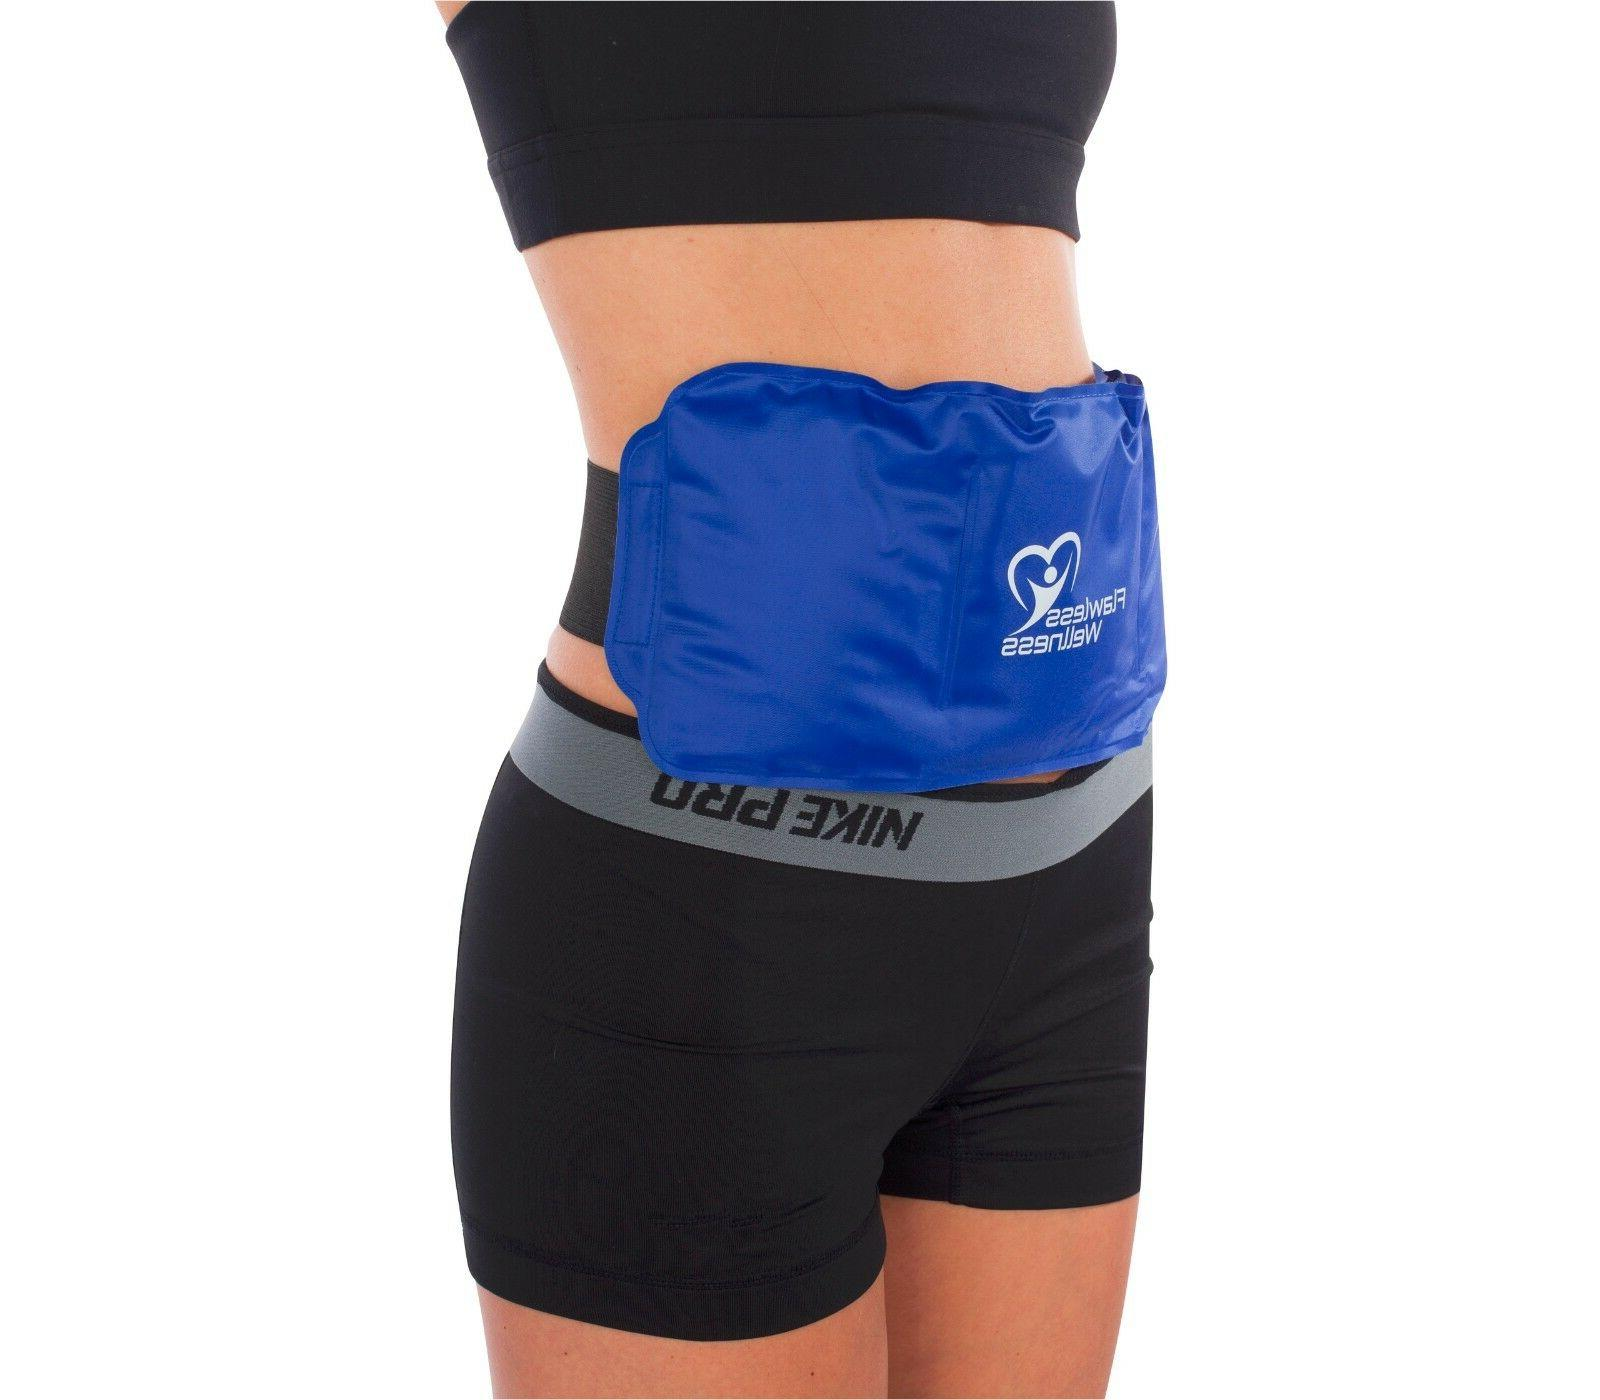 Wrap Therapy Pain Relief knee, back